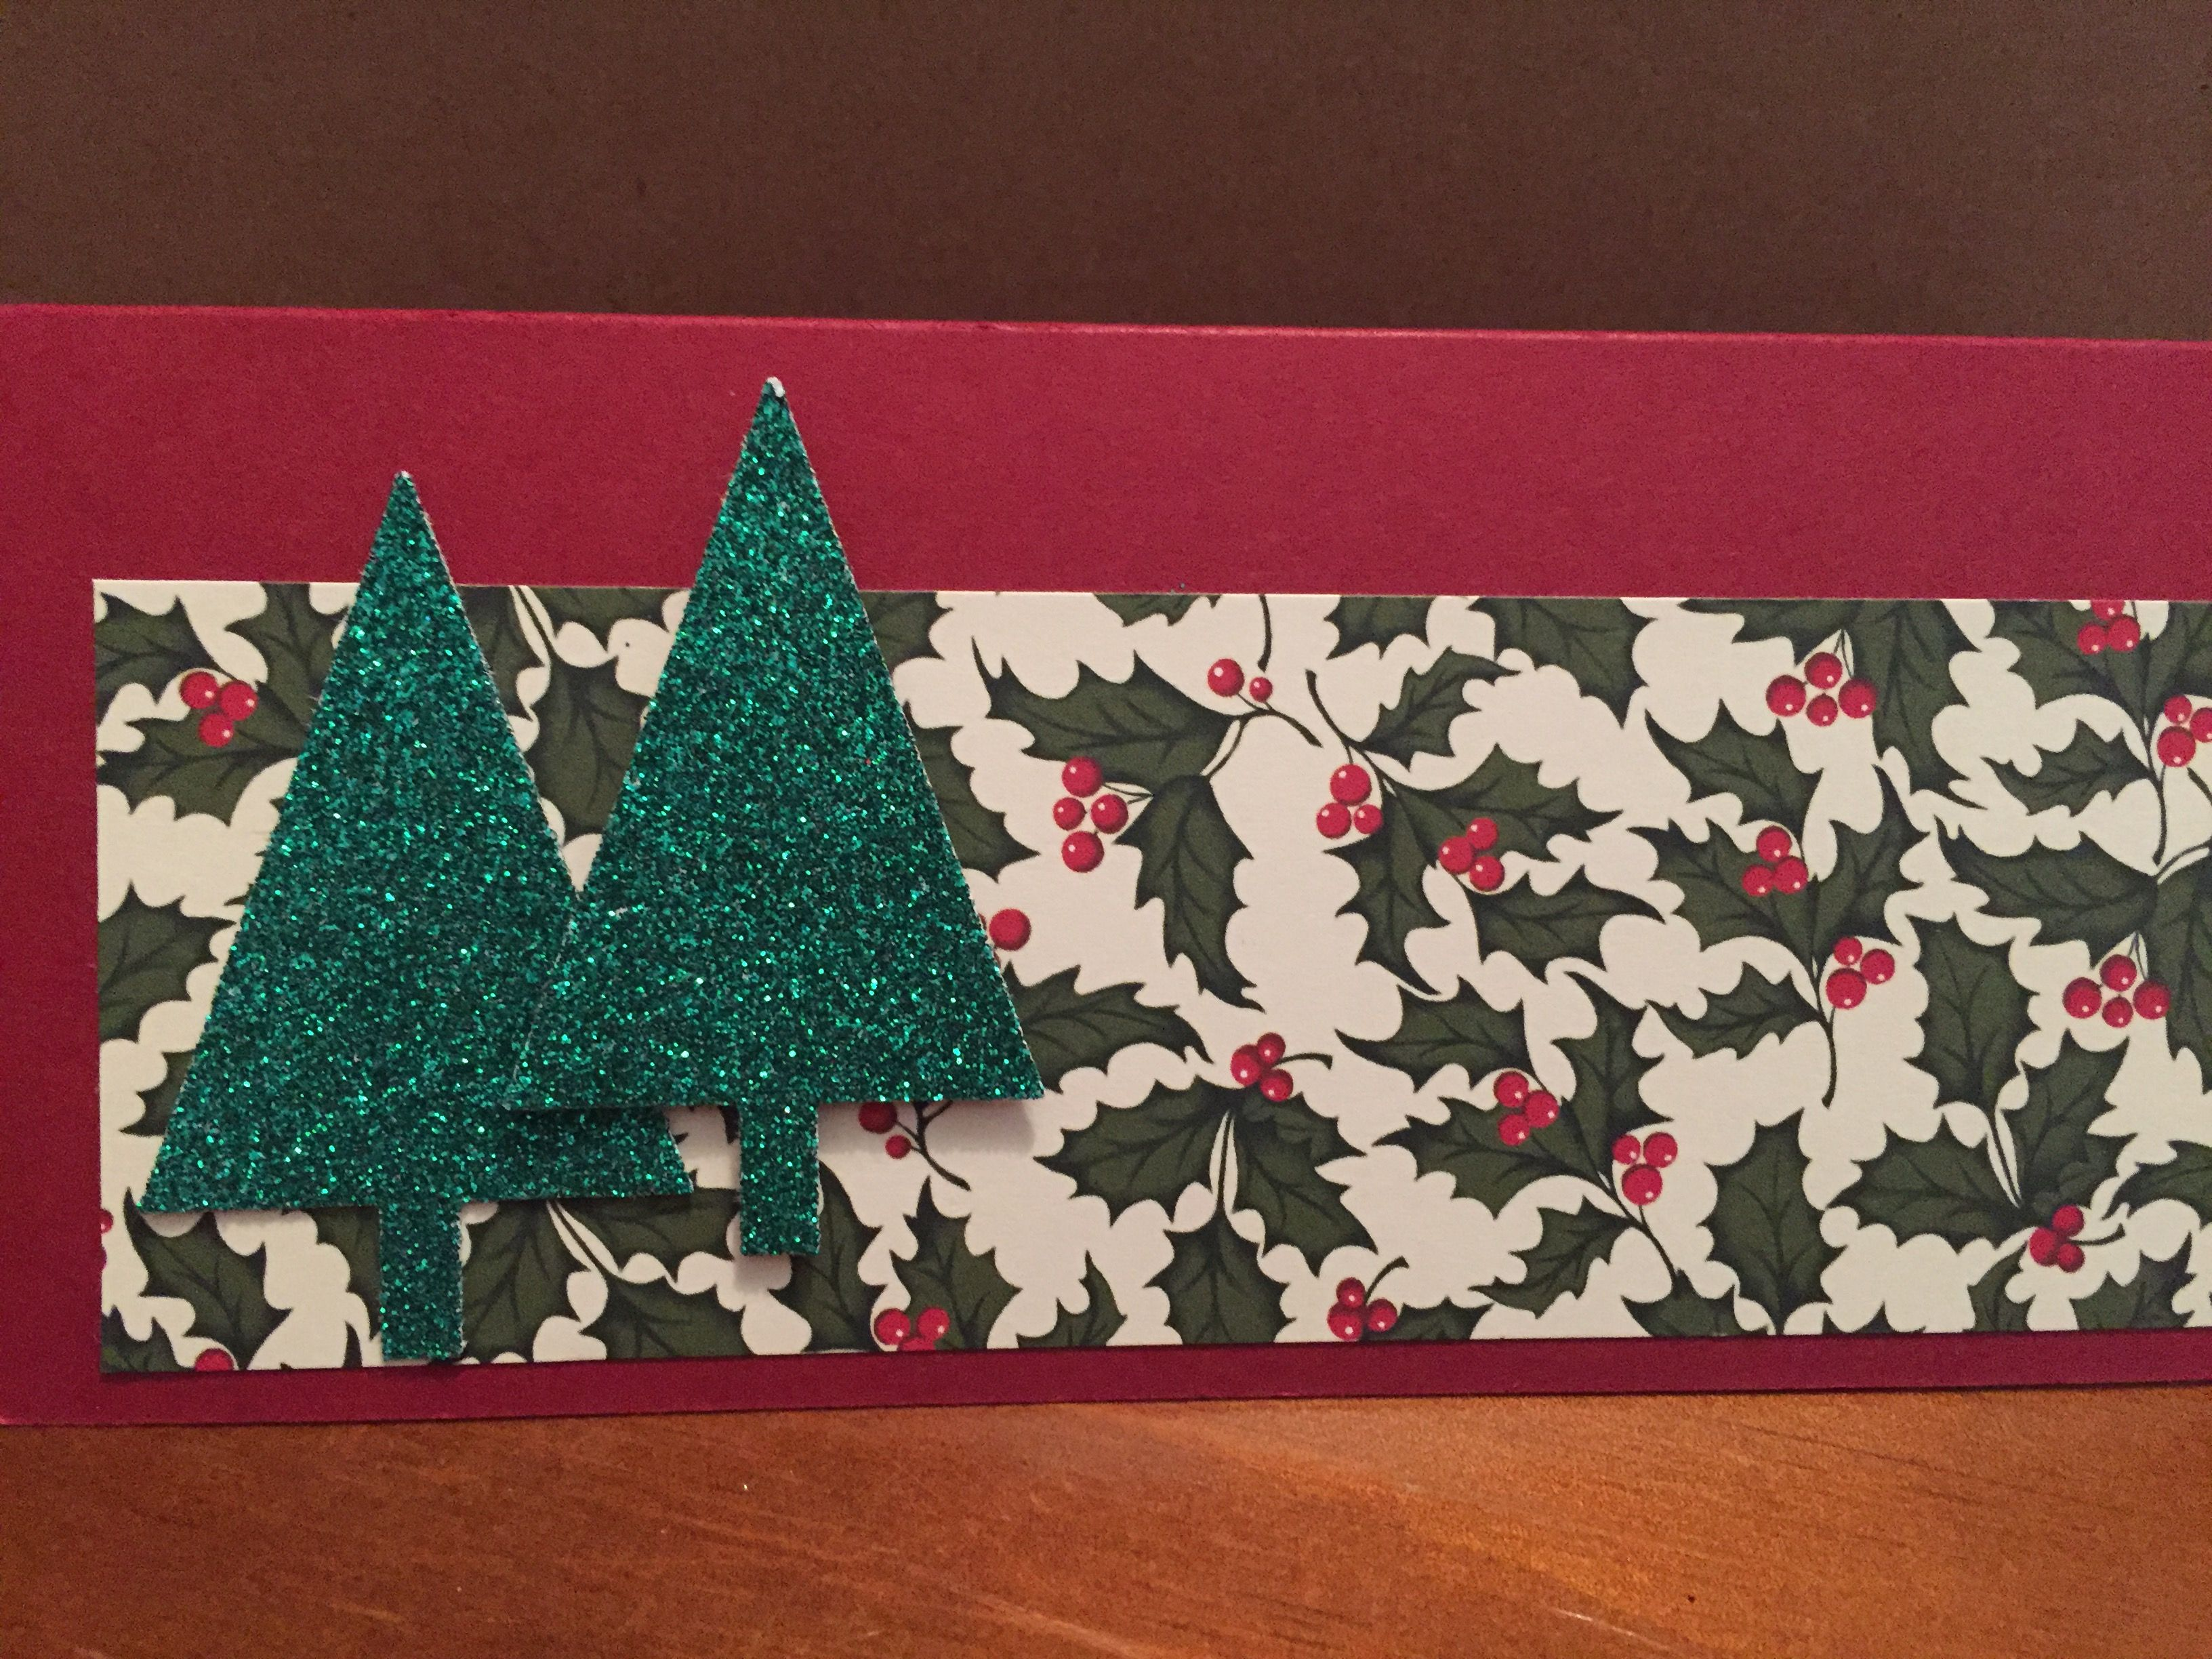 Christmas money holder, made with Stampin up paper and card (Home for Christmas DSP), Festival of Trees punch.